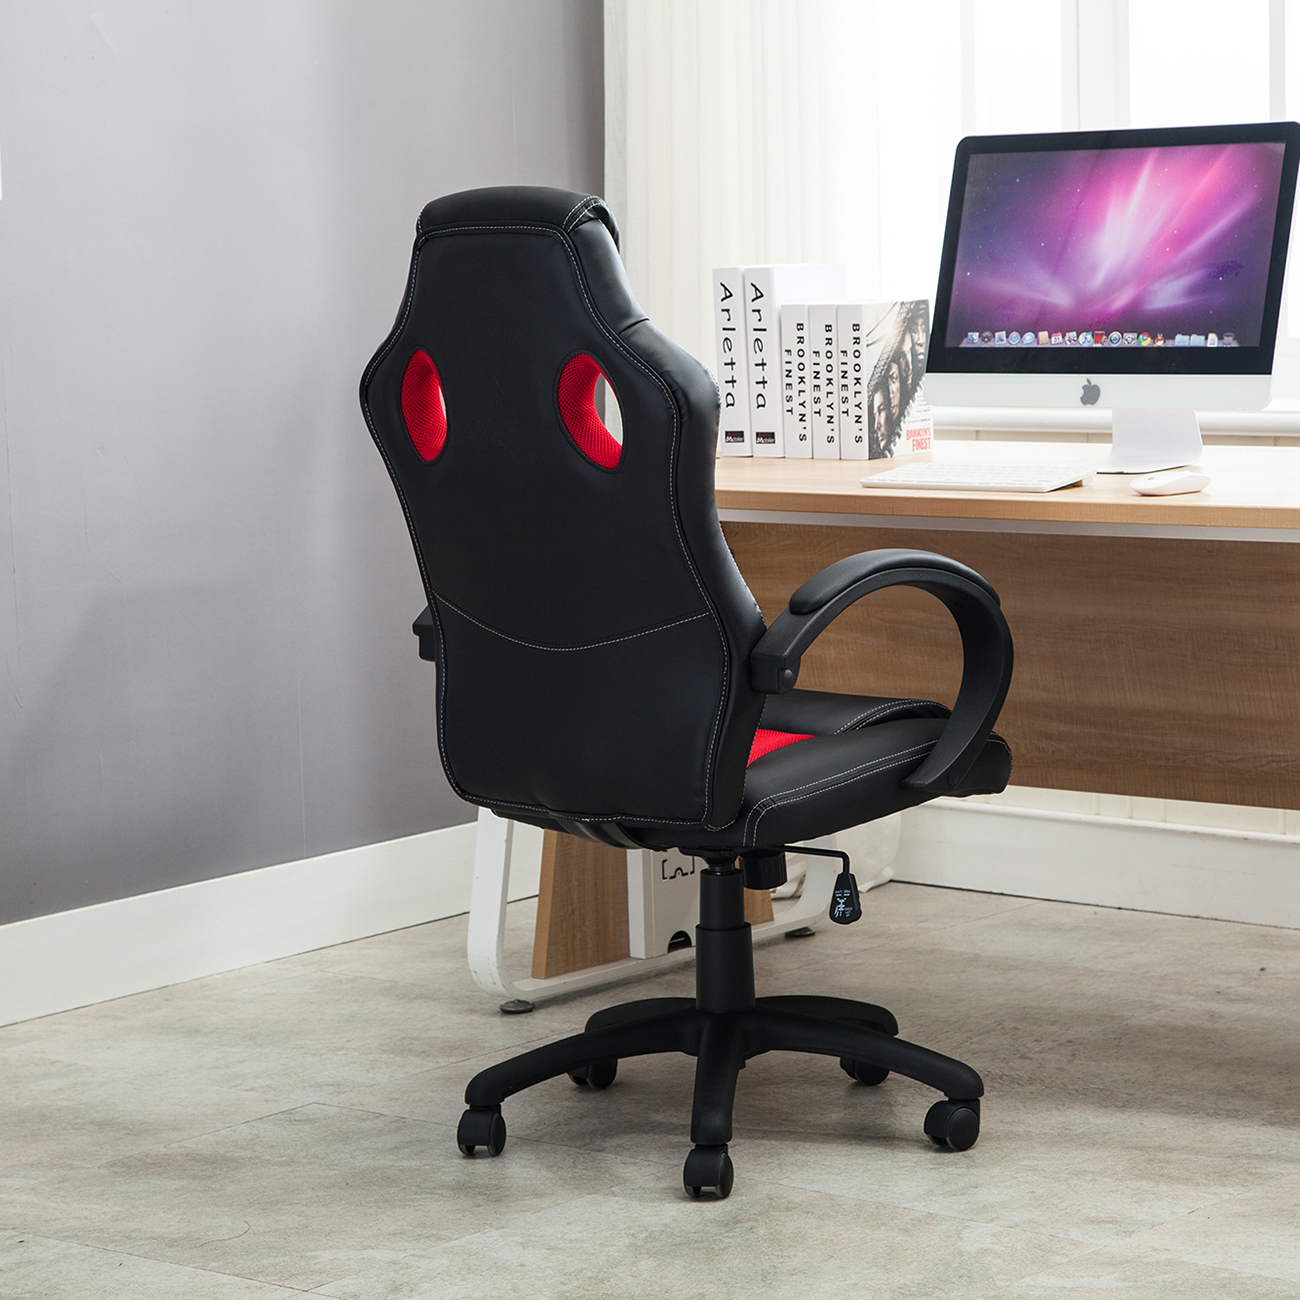 Office Chair Ergonomic Computer Mesh PU Leather Desk Office Chair Ergonomic Computer Mesh PU Leather Desk Seat Race Car  . Office Racer Chair. Home Design Ideas